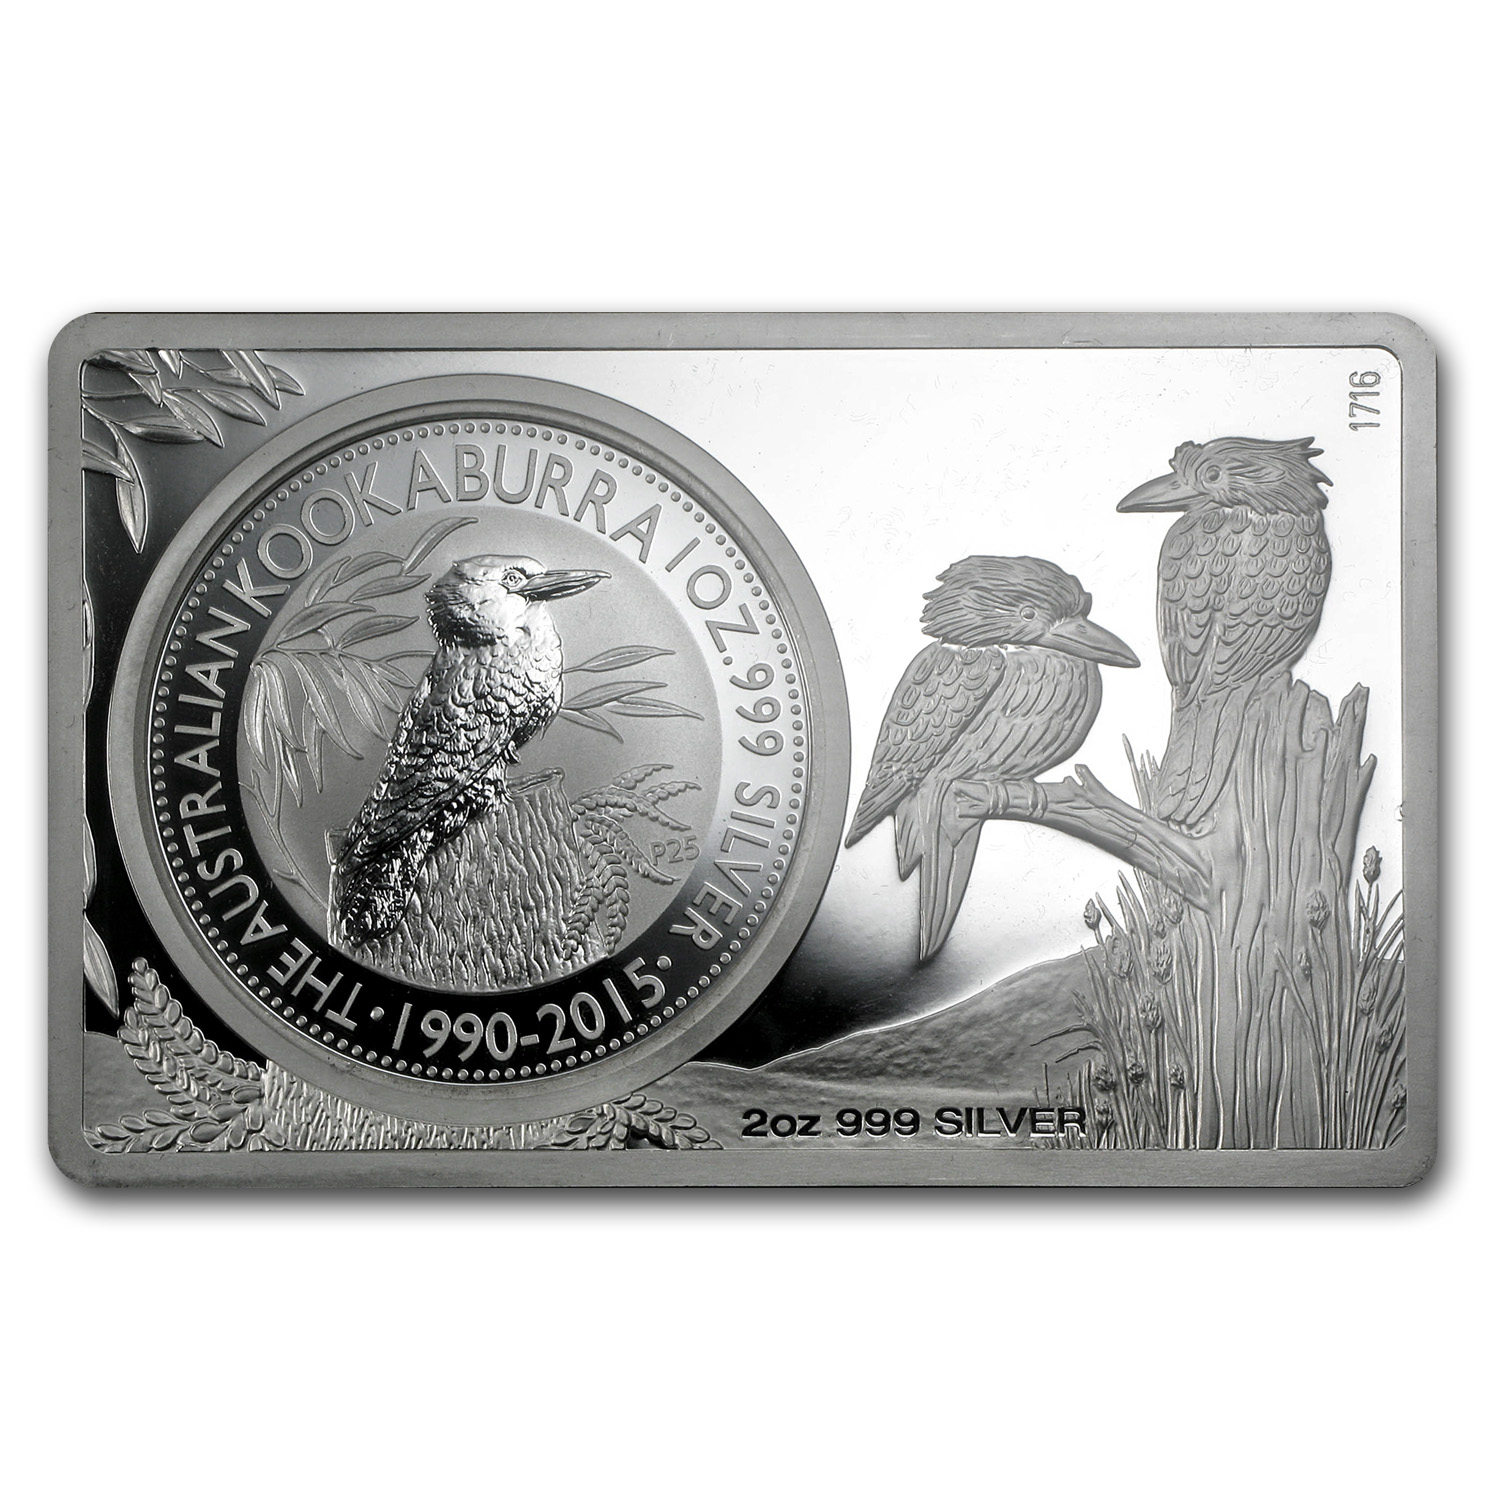 2015 2-Pc Silver Bar & Coin Set (25th Ann of Kookaburra)